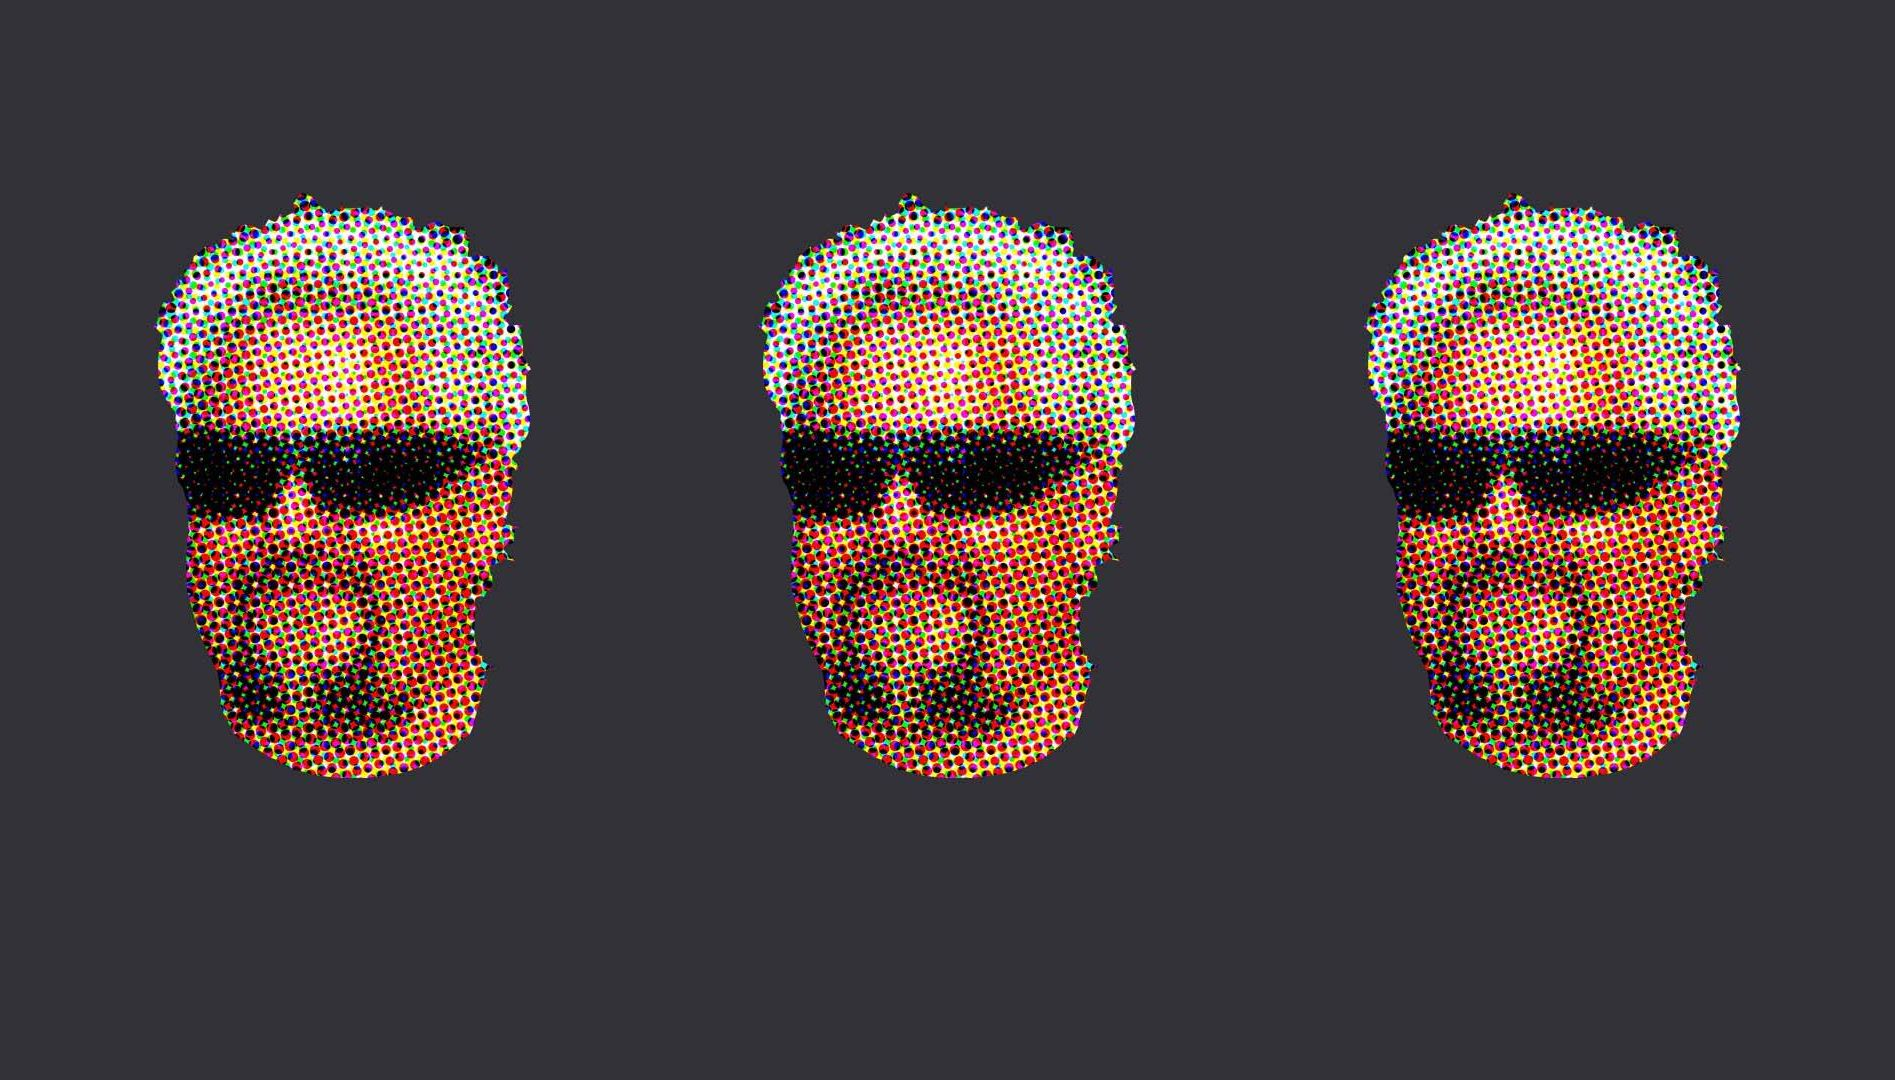 images of Guy Fieri. Rewire pbs living tacky